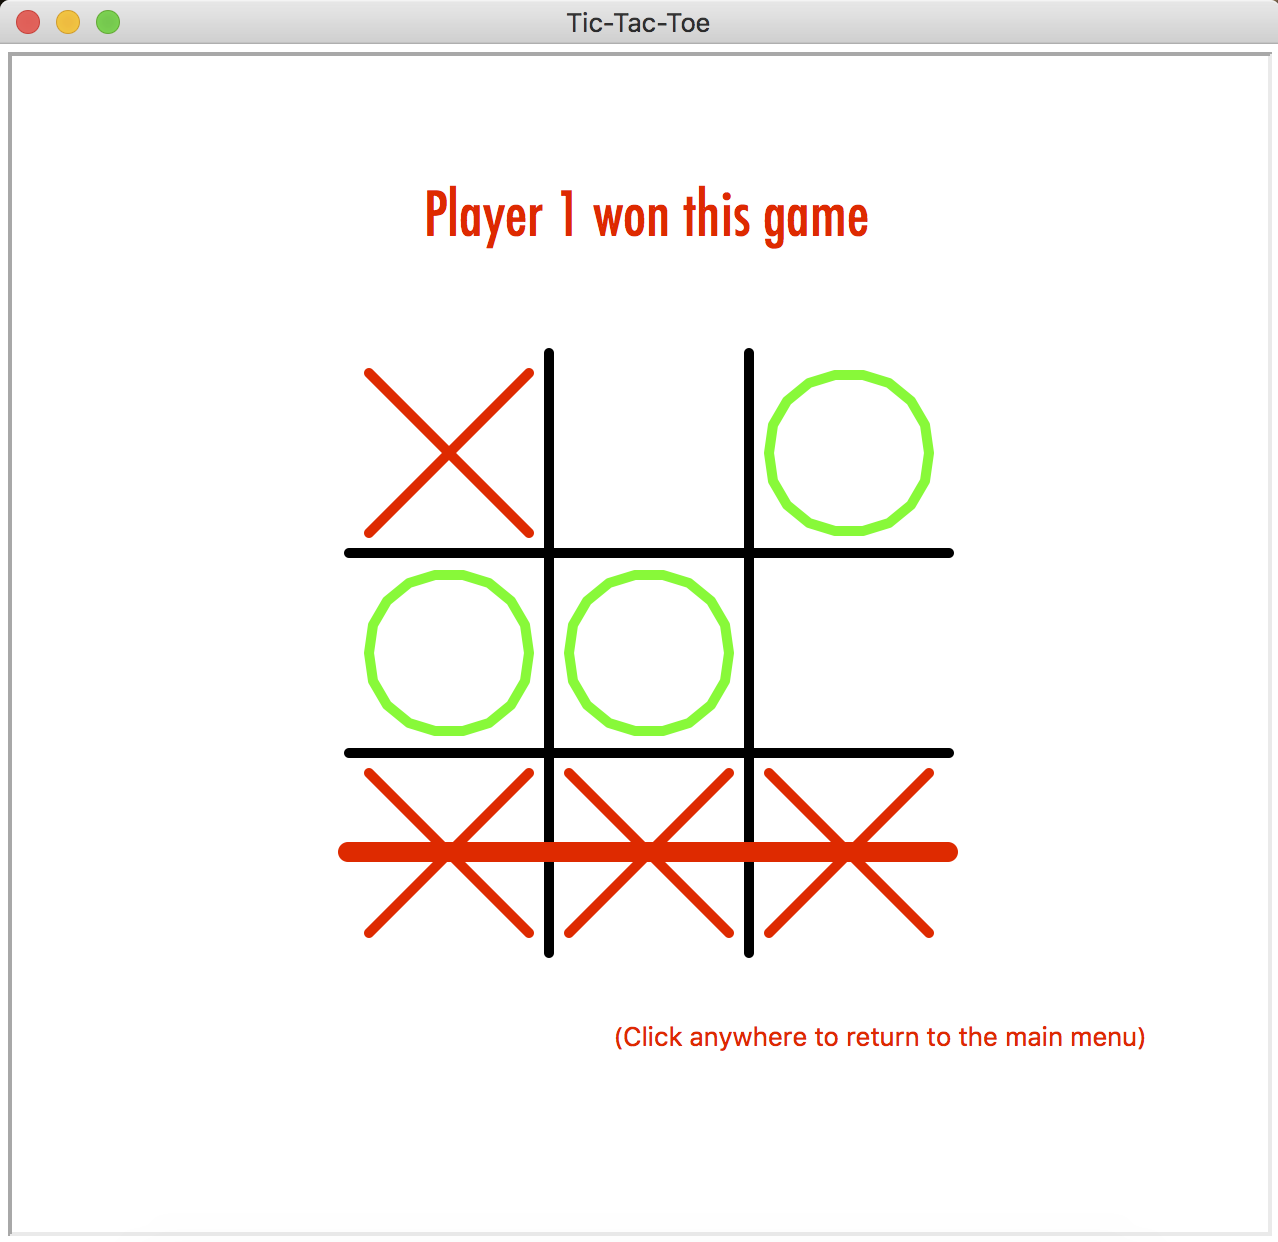 GitHub - DCoelhoM/Tic-Tac-Toe-Python: Tic-Tac-Toe game with